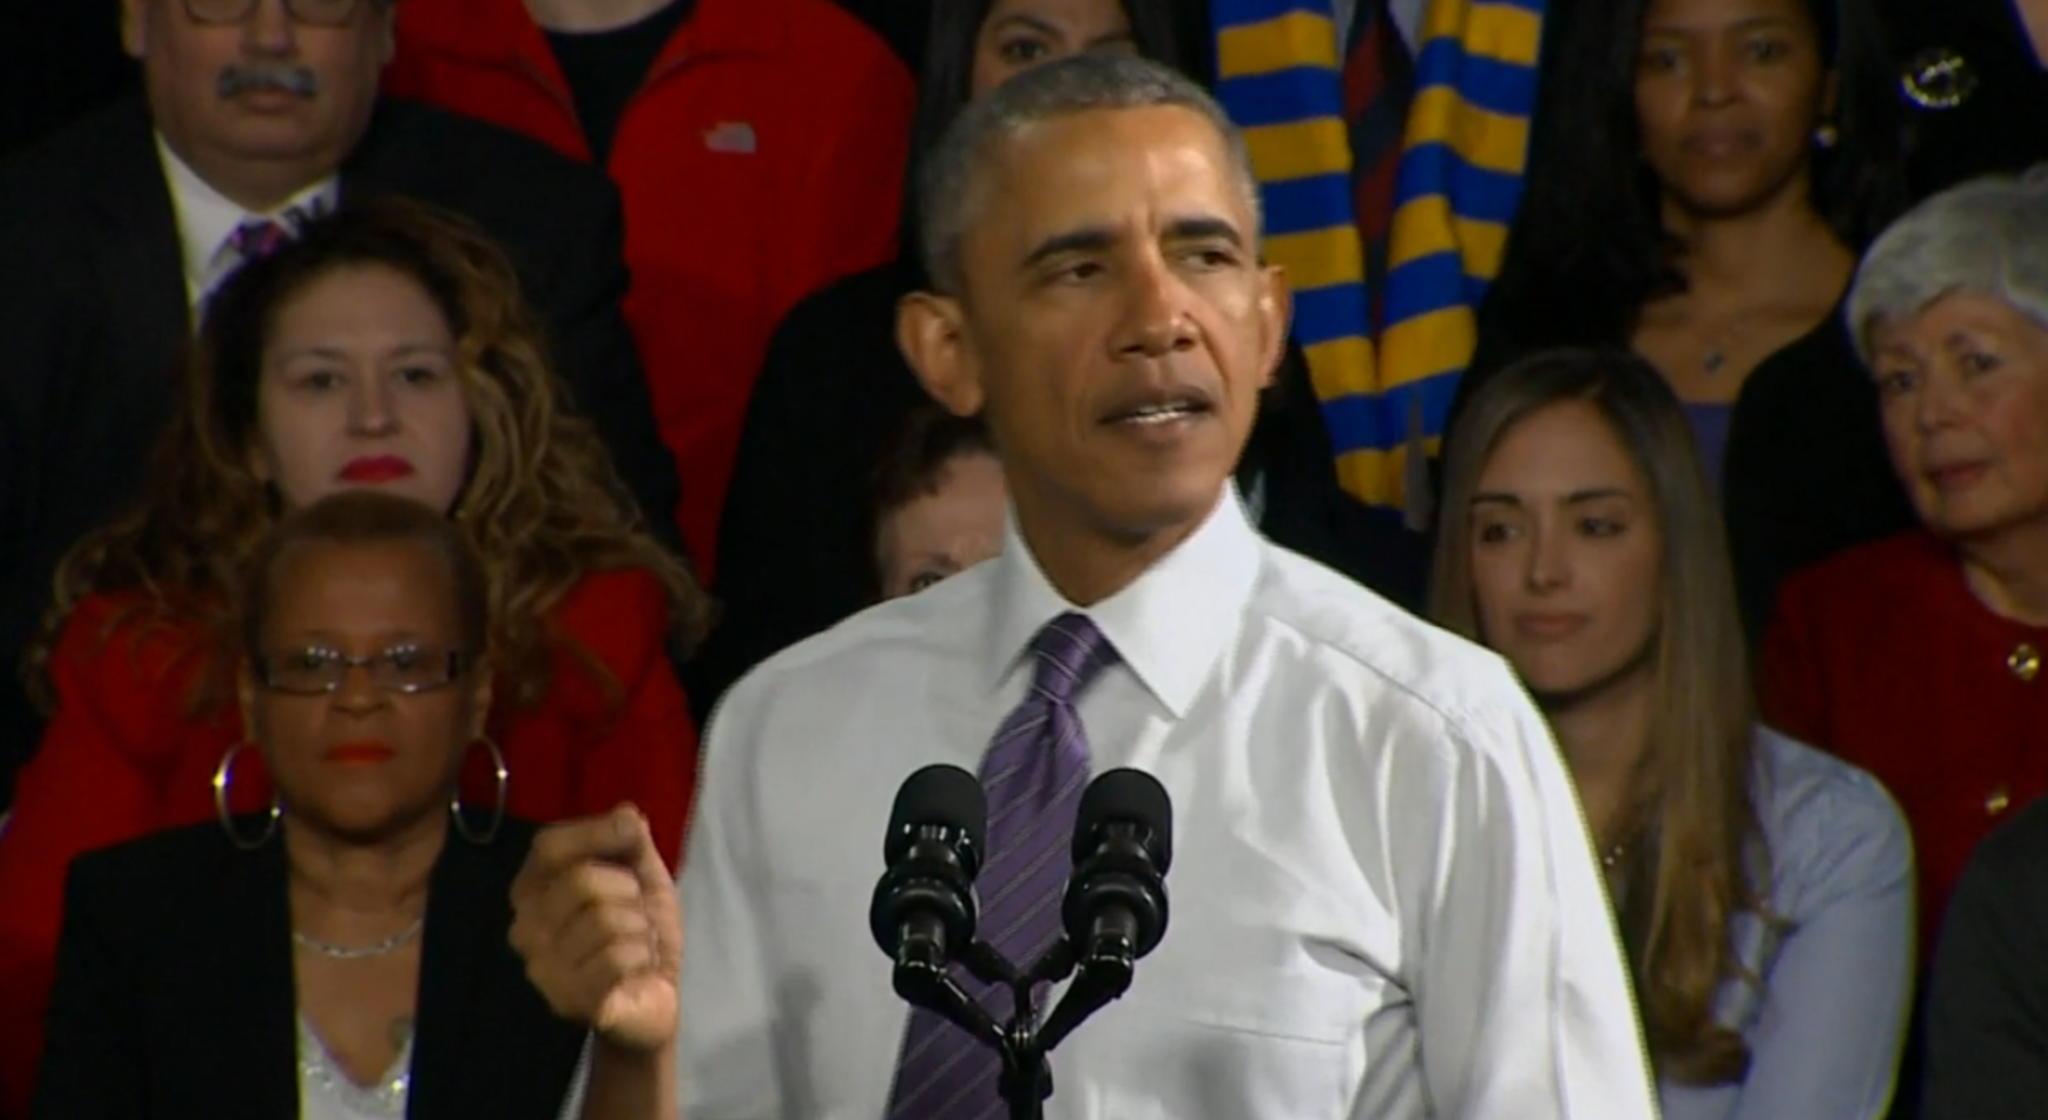 Obama cites gains in health coverage during Milwaukee visit